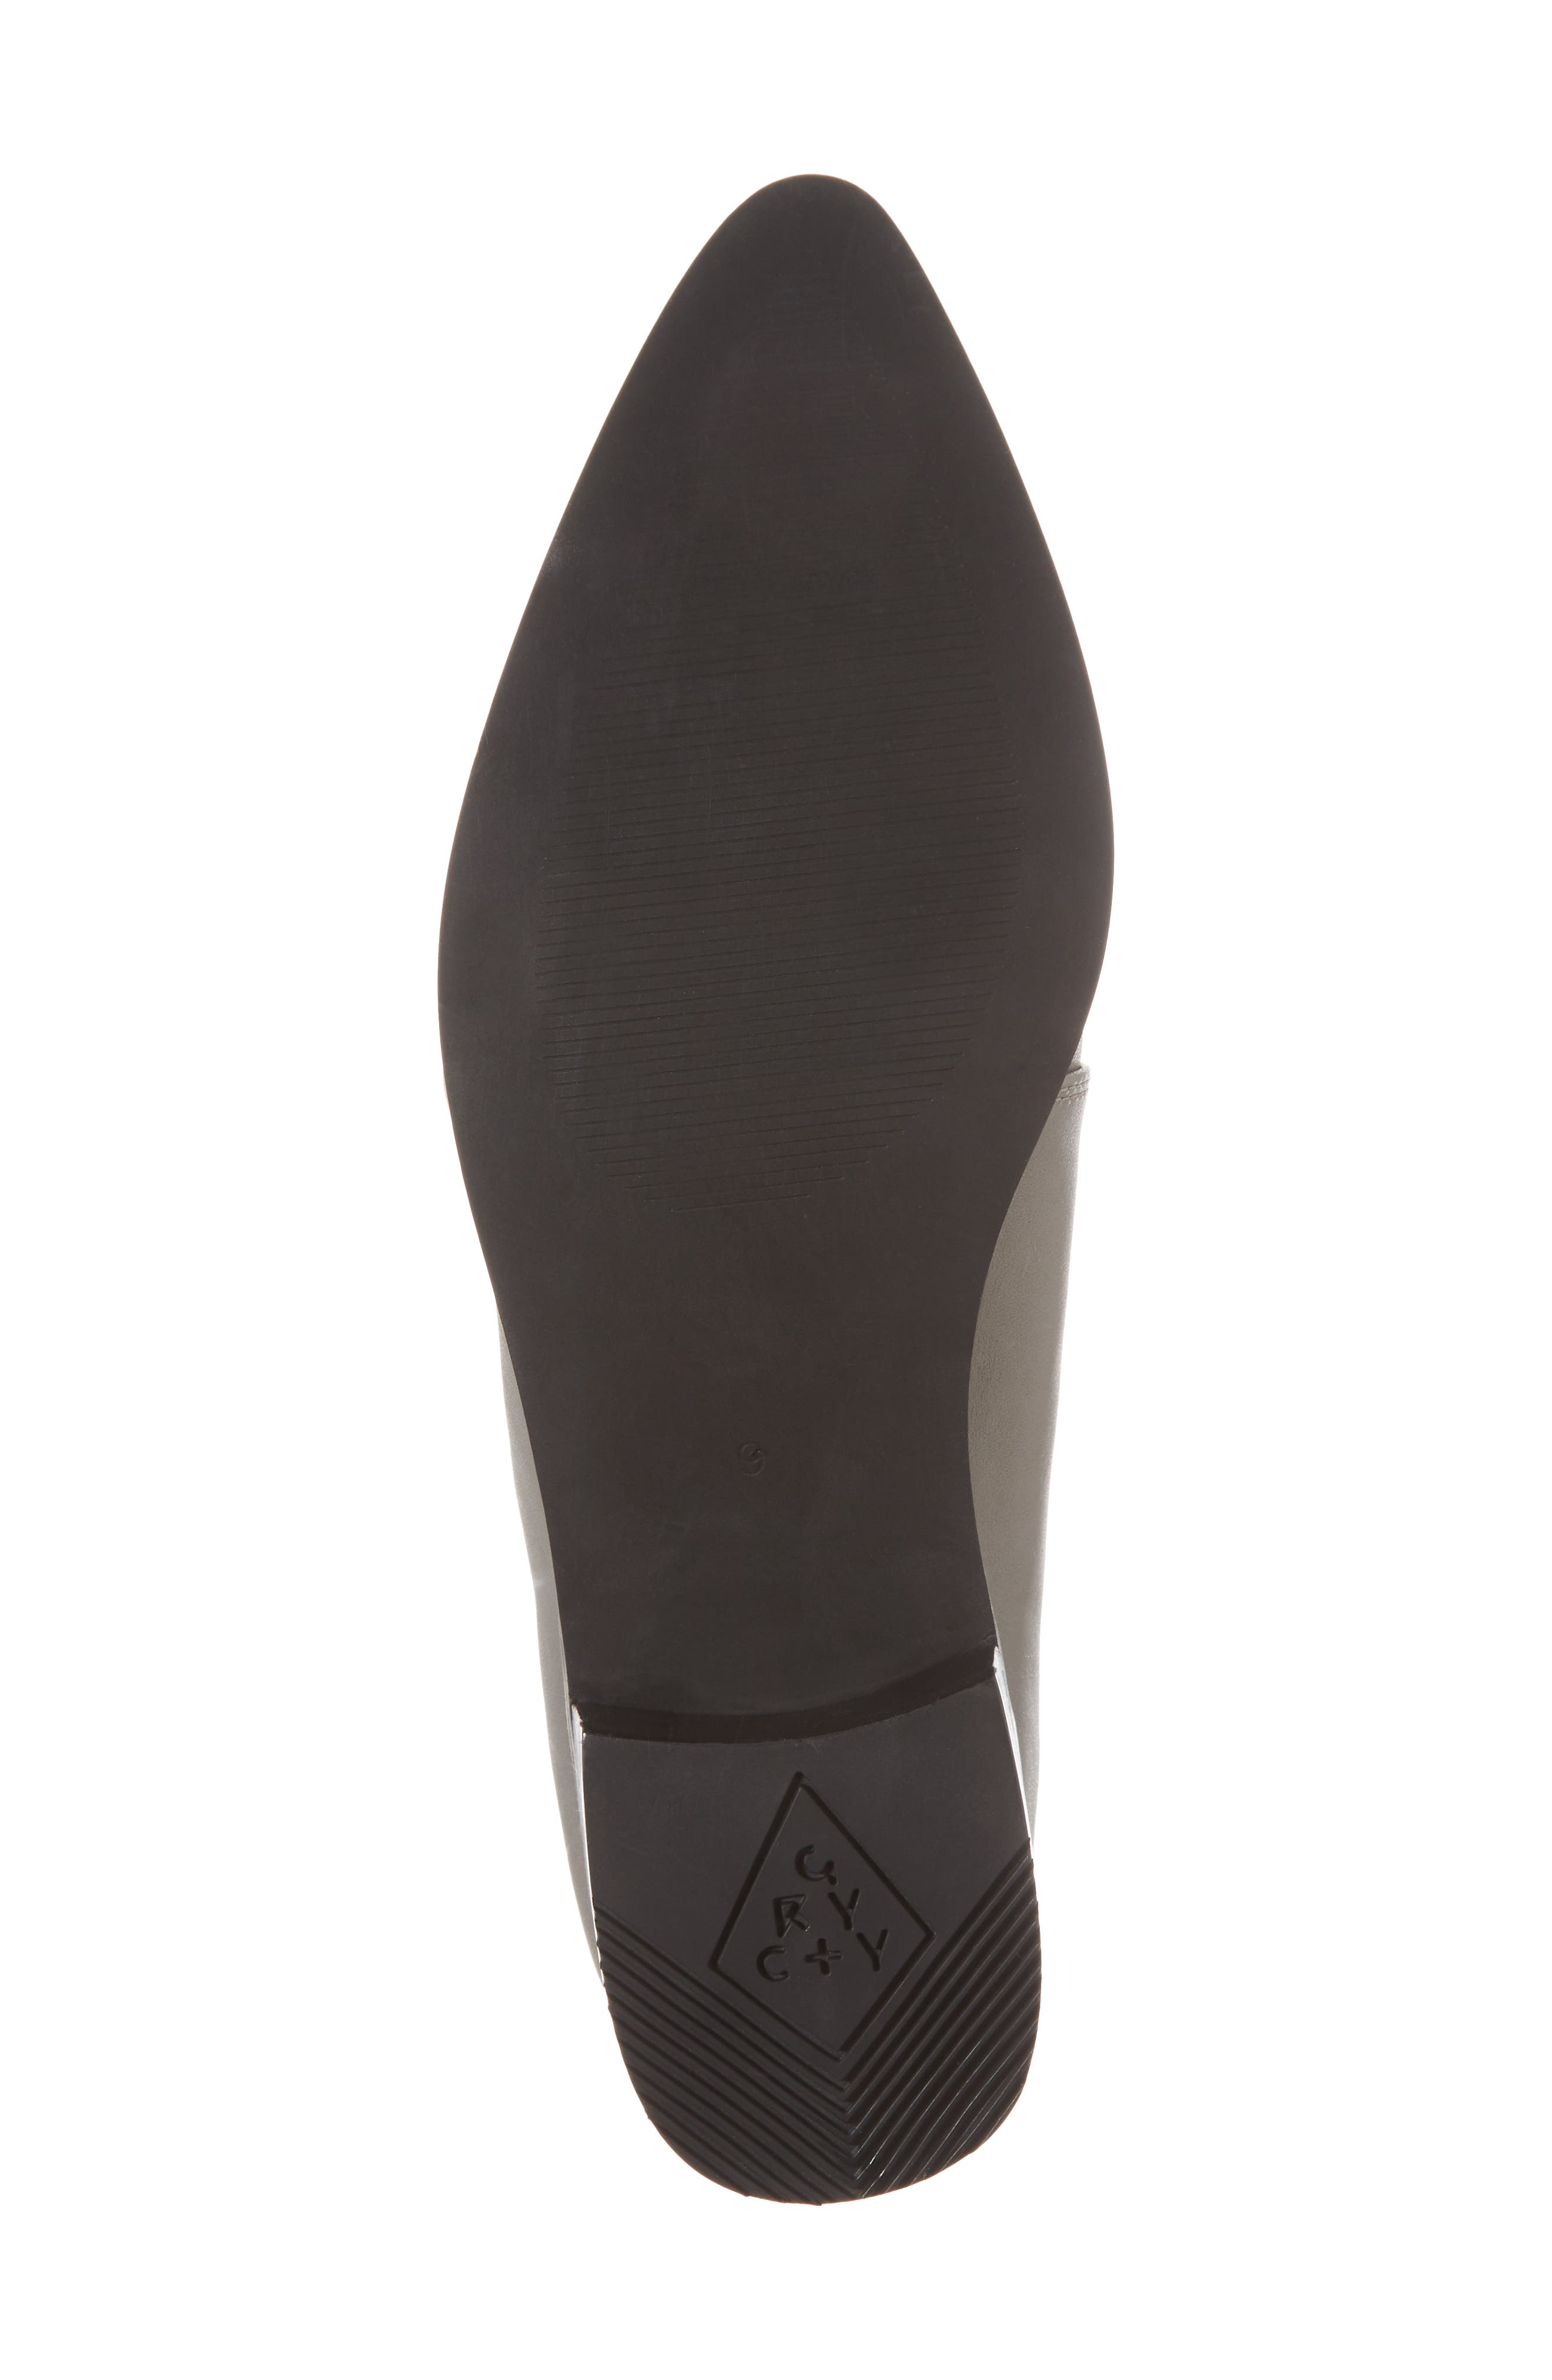 Waverly Lace-Up Bootie,                             Alternate thumbnail 6, color,                             035